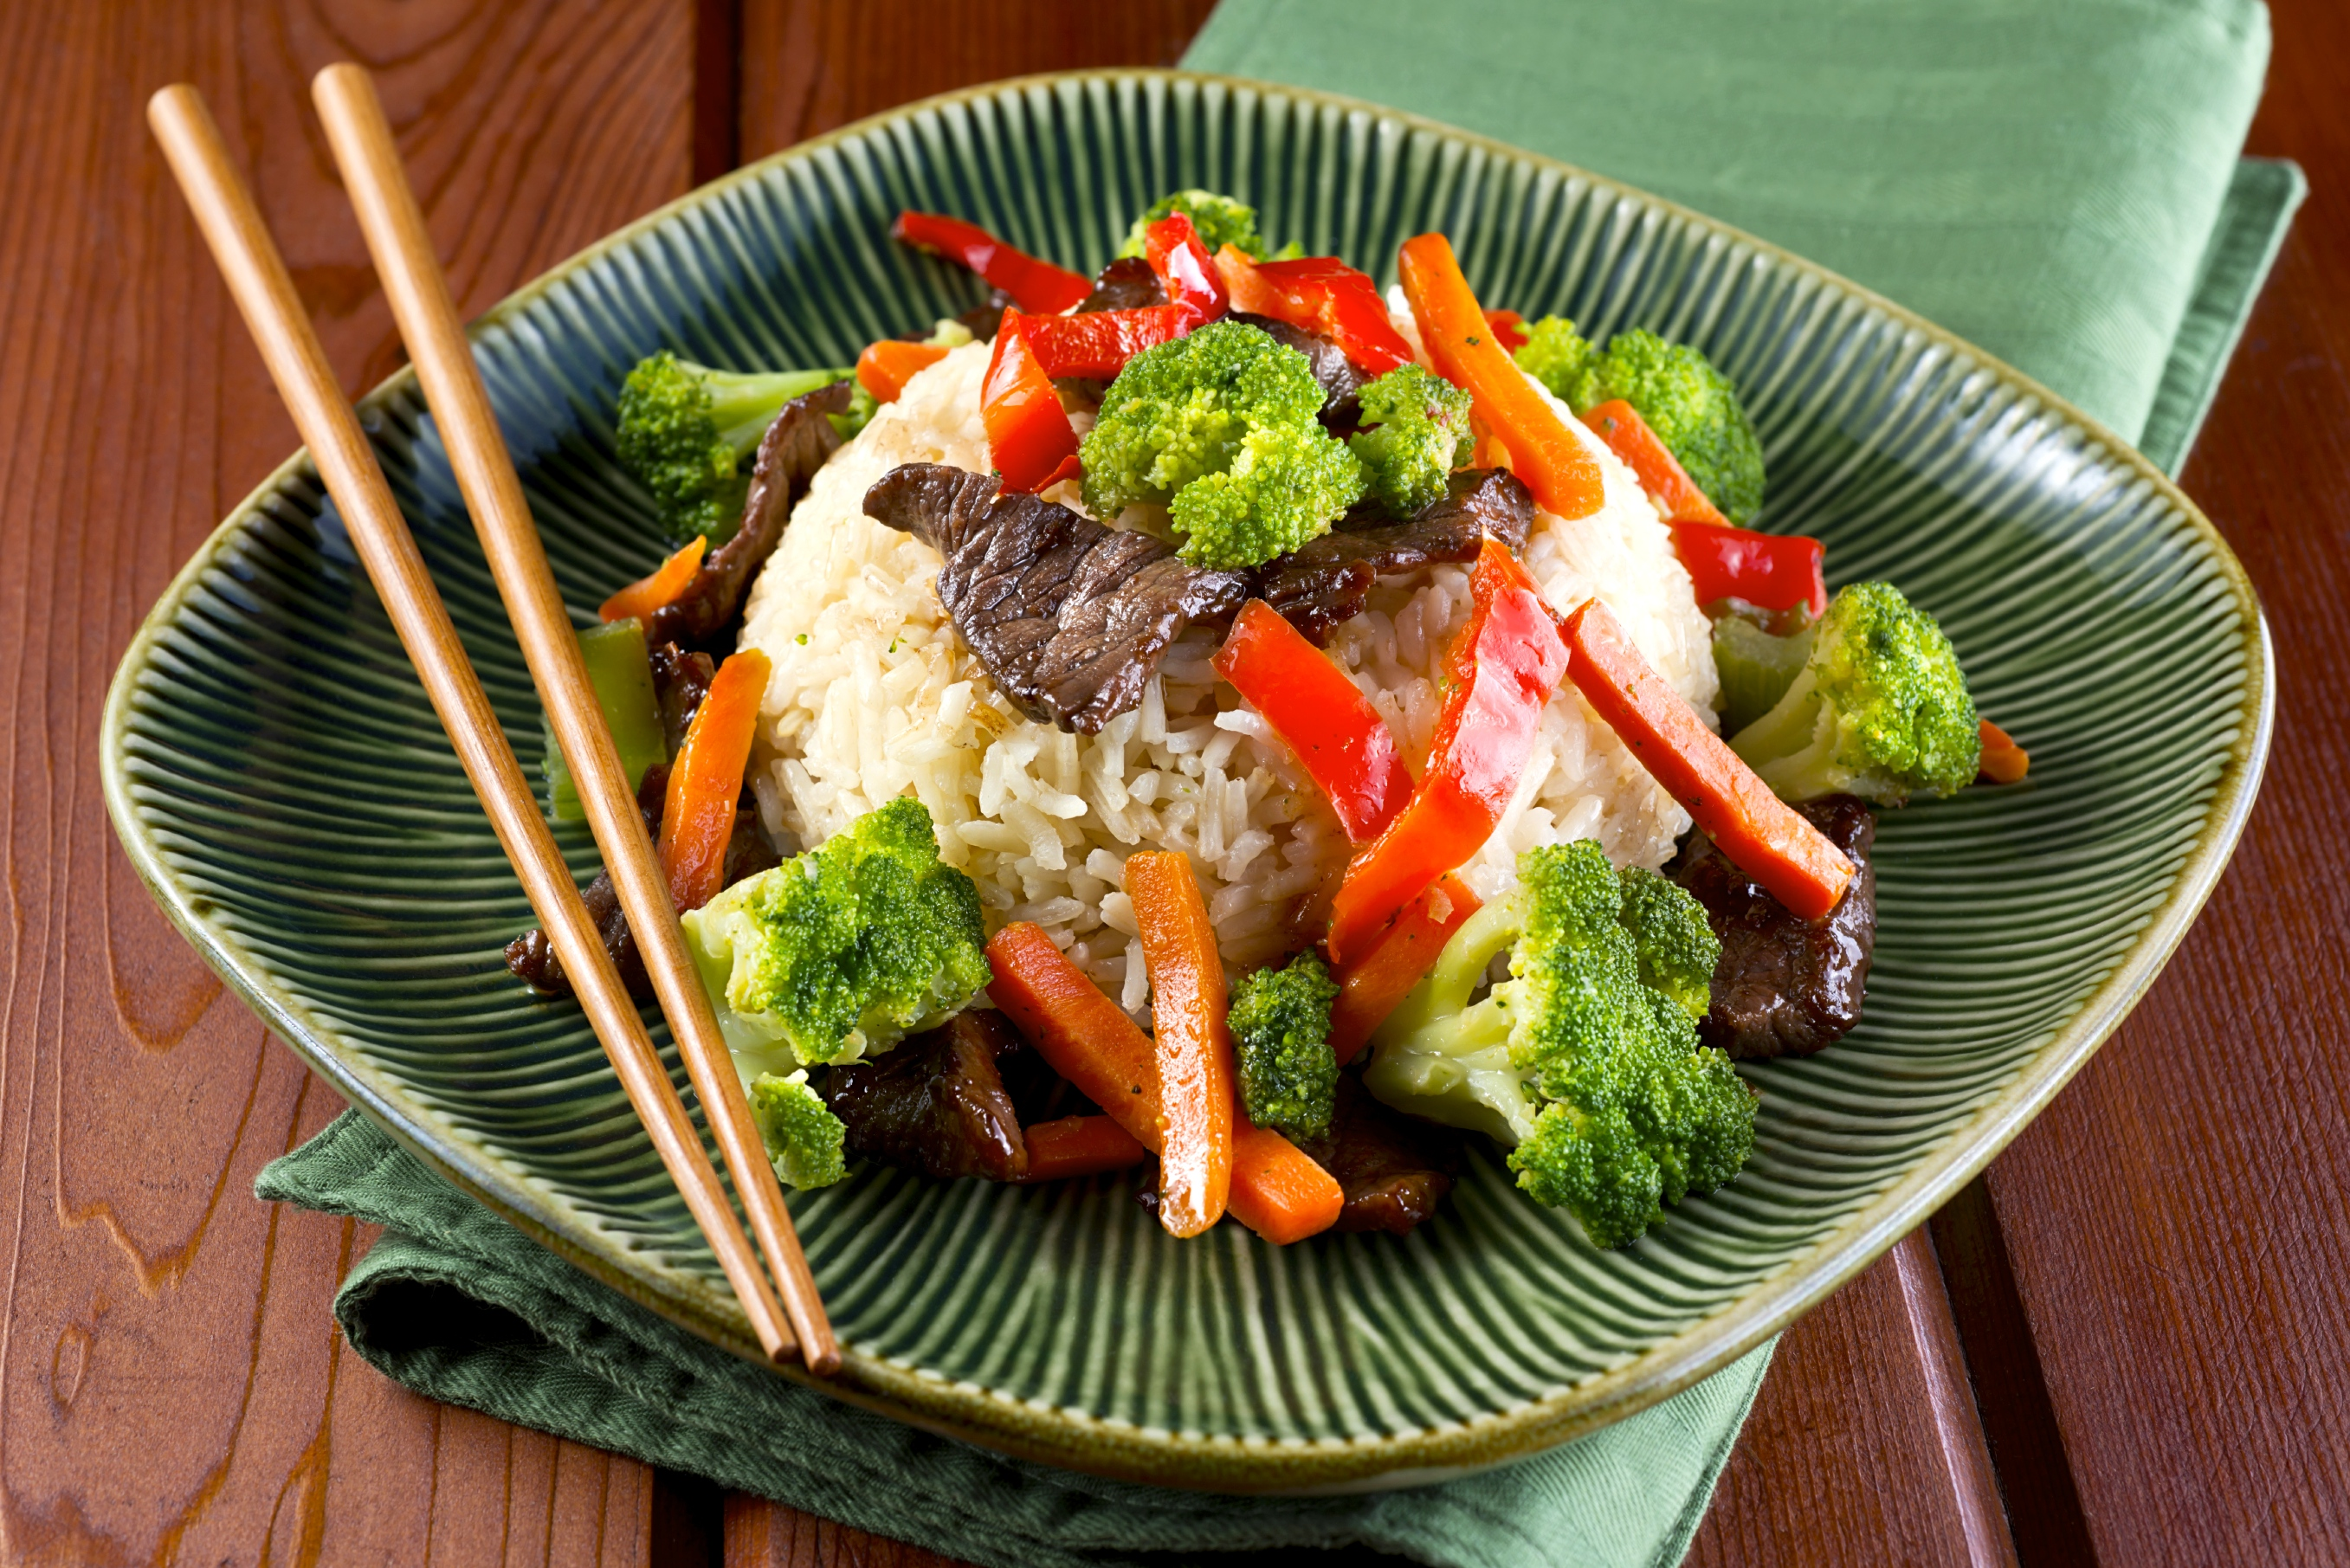 Plate of Beef and Broccoli Stir Fry with Carrots and Bell Pepper